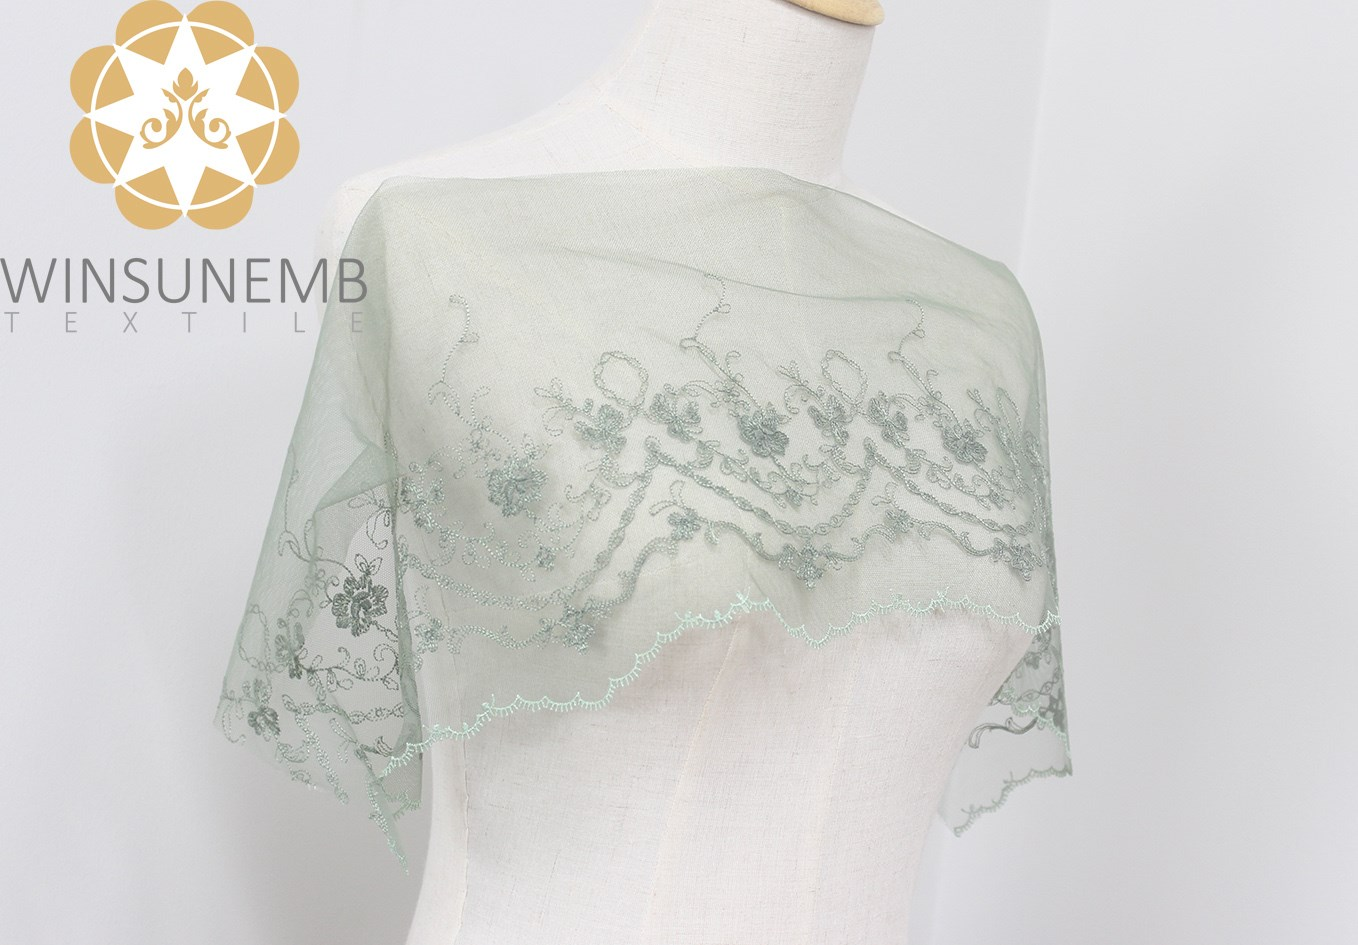 Winsunemb -Stretch Lace Trim | Winsunem  attracts Fans style Embroidery Lace Trimming -1